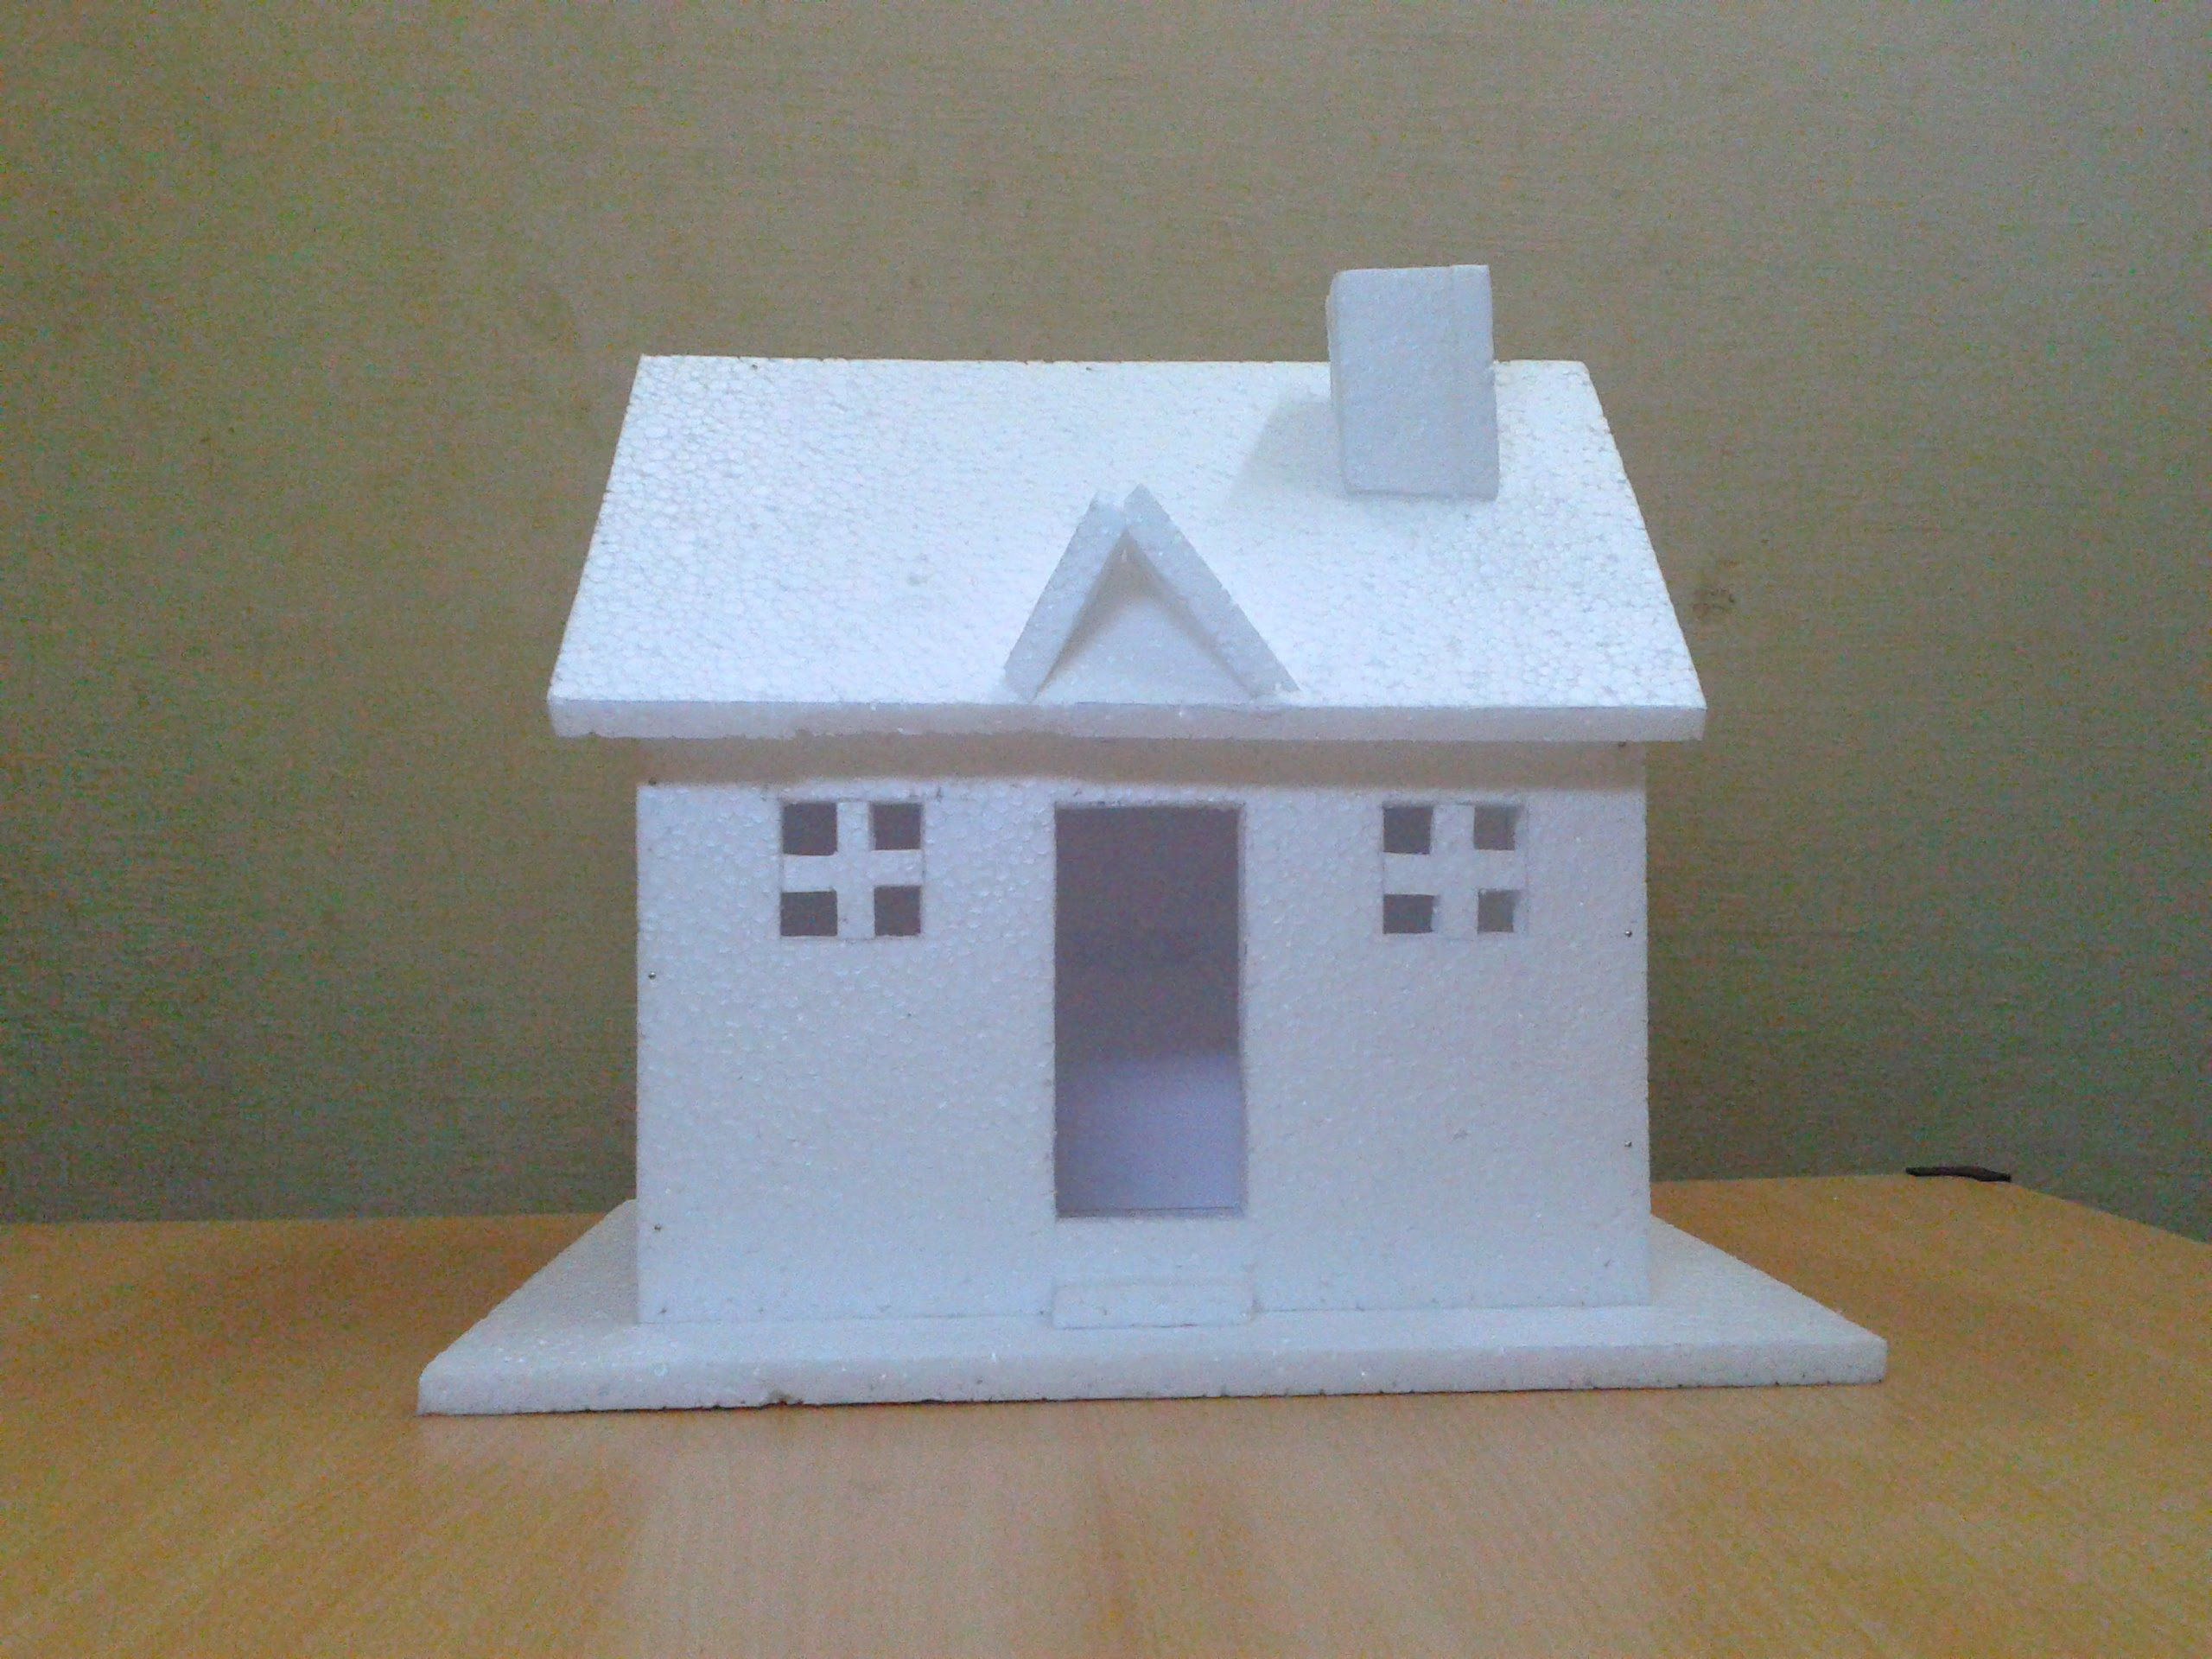 House Craft Ideas For Kids Part - 36: How To Make A Small Thermocol House Model: Craft Ideas For Kids